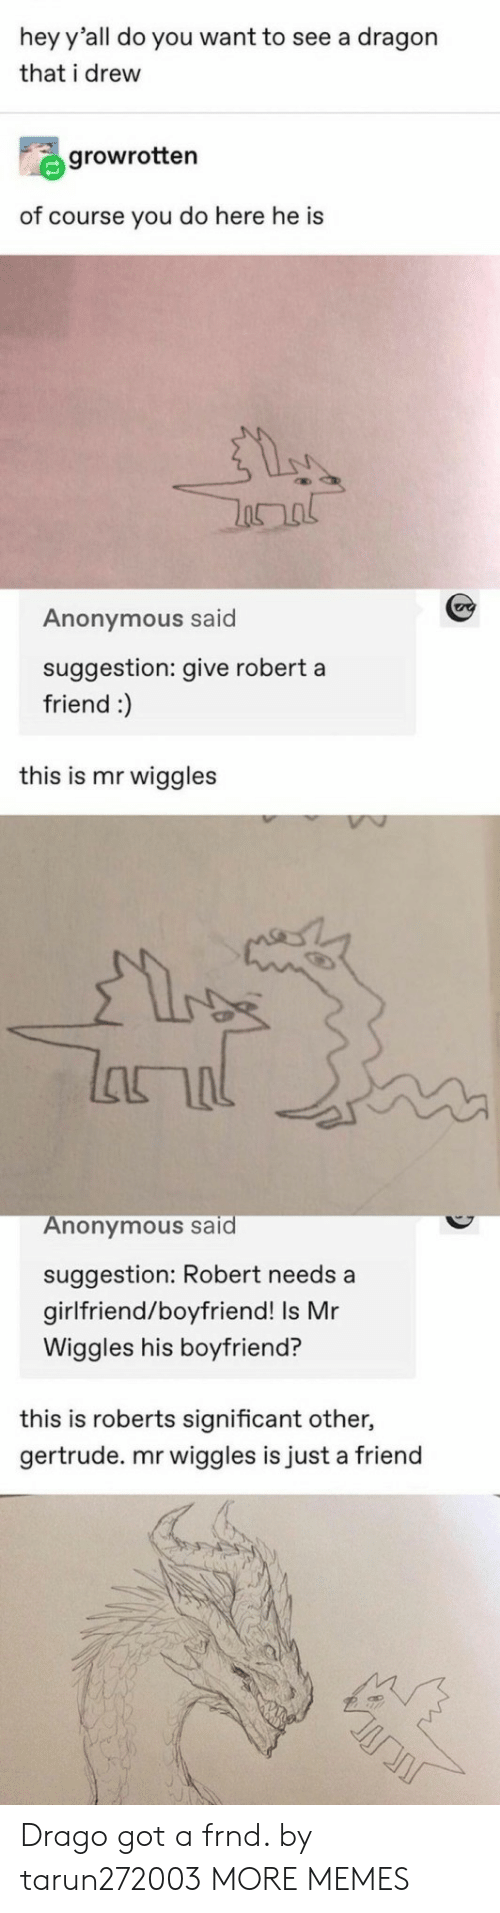 Dank, Memes, and Target: hey y'all do you want to see a dragon  that i drew  growrotten  of course you do here he is  Anonymous said  suggestion: give robert a  friend :)  this is mr wiggles  lanal  Anonymous said  suggestion: Robert needs a  girlfriend/boyfriend! Is Mr  Wiggles his boyfriend?  this is roberts significant other,  gertrude. mr wiggles is just a friend Drago got a frnd. by tarun272003 MORE MEMES